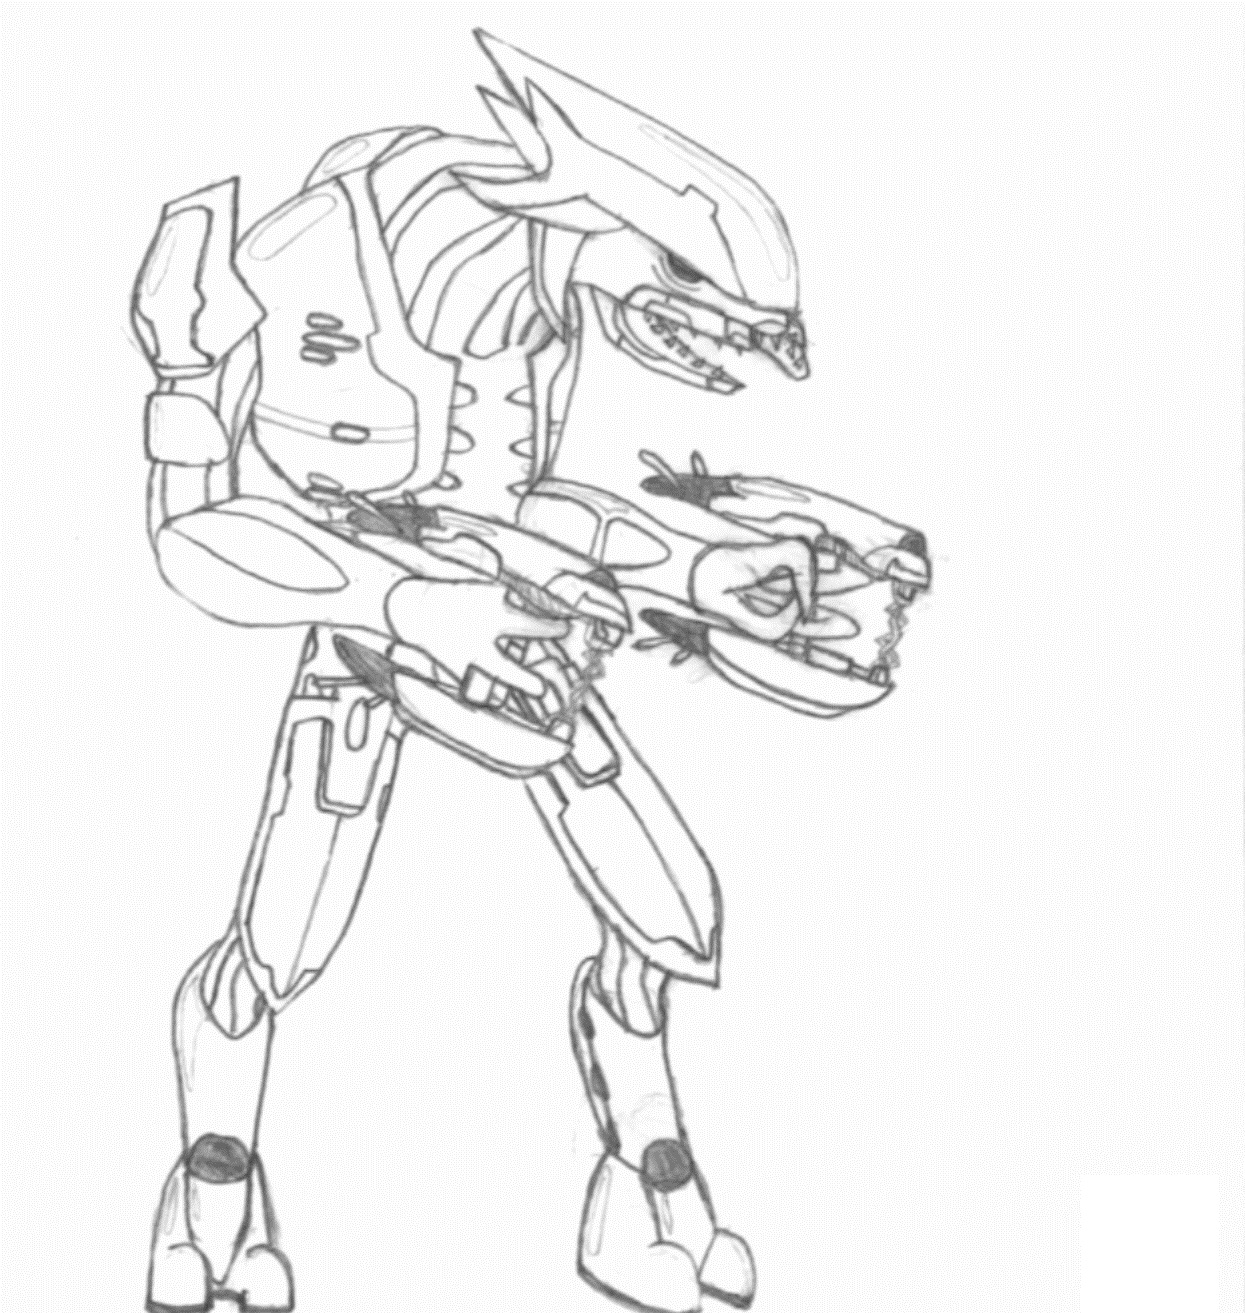 Halo 4 coloring pages -  Halo Coloring Pages To Print Download